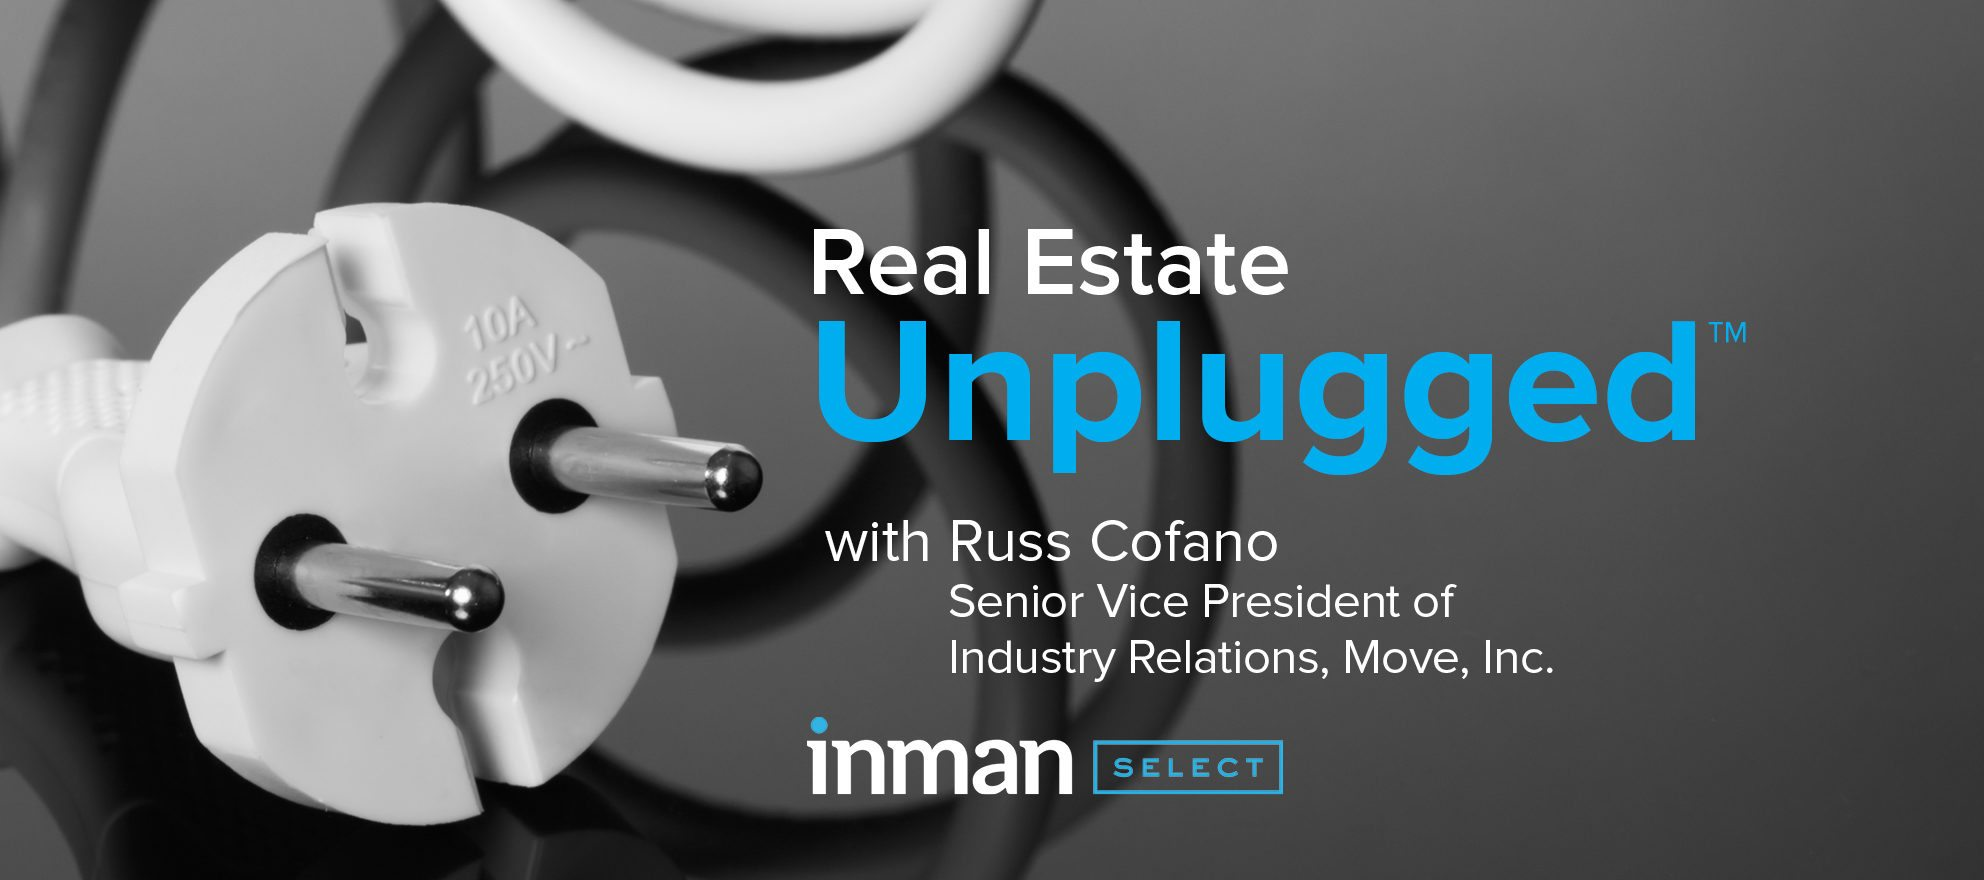 Russ Cofano on the need for greater sense of competition in real estate